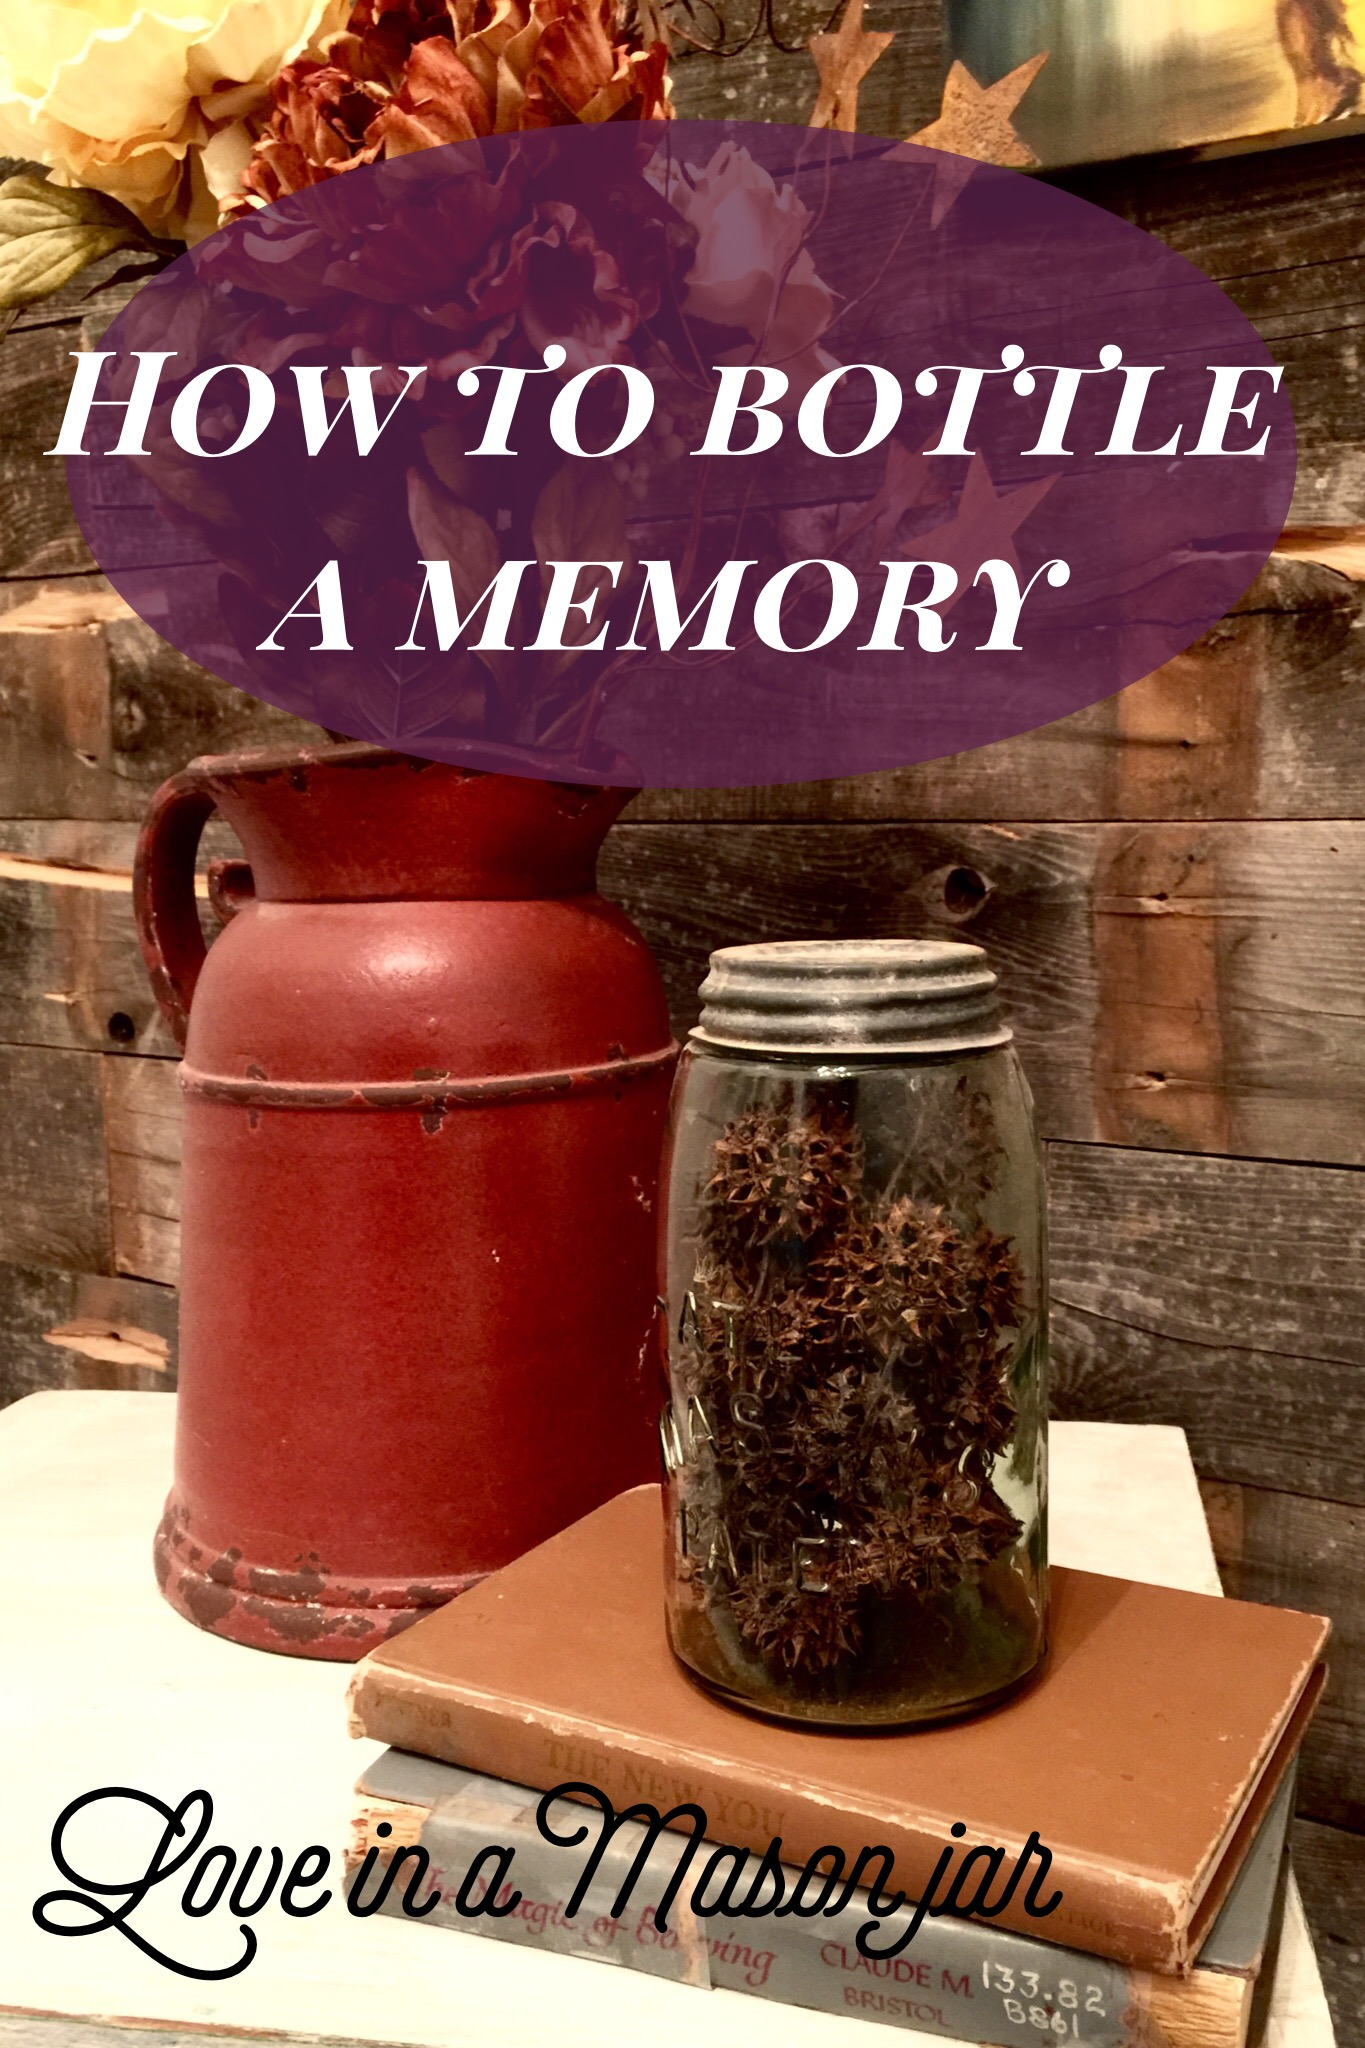 How to Bottle a memory